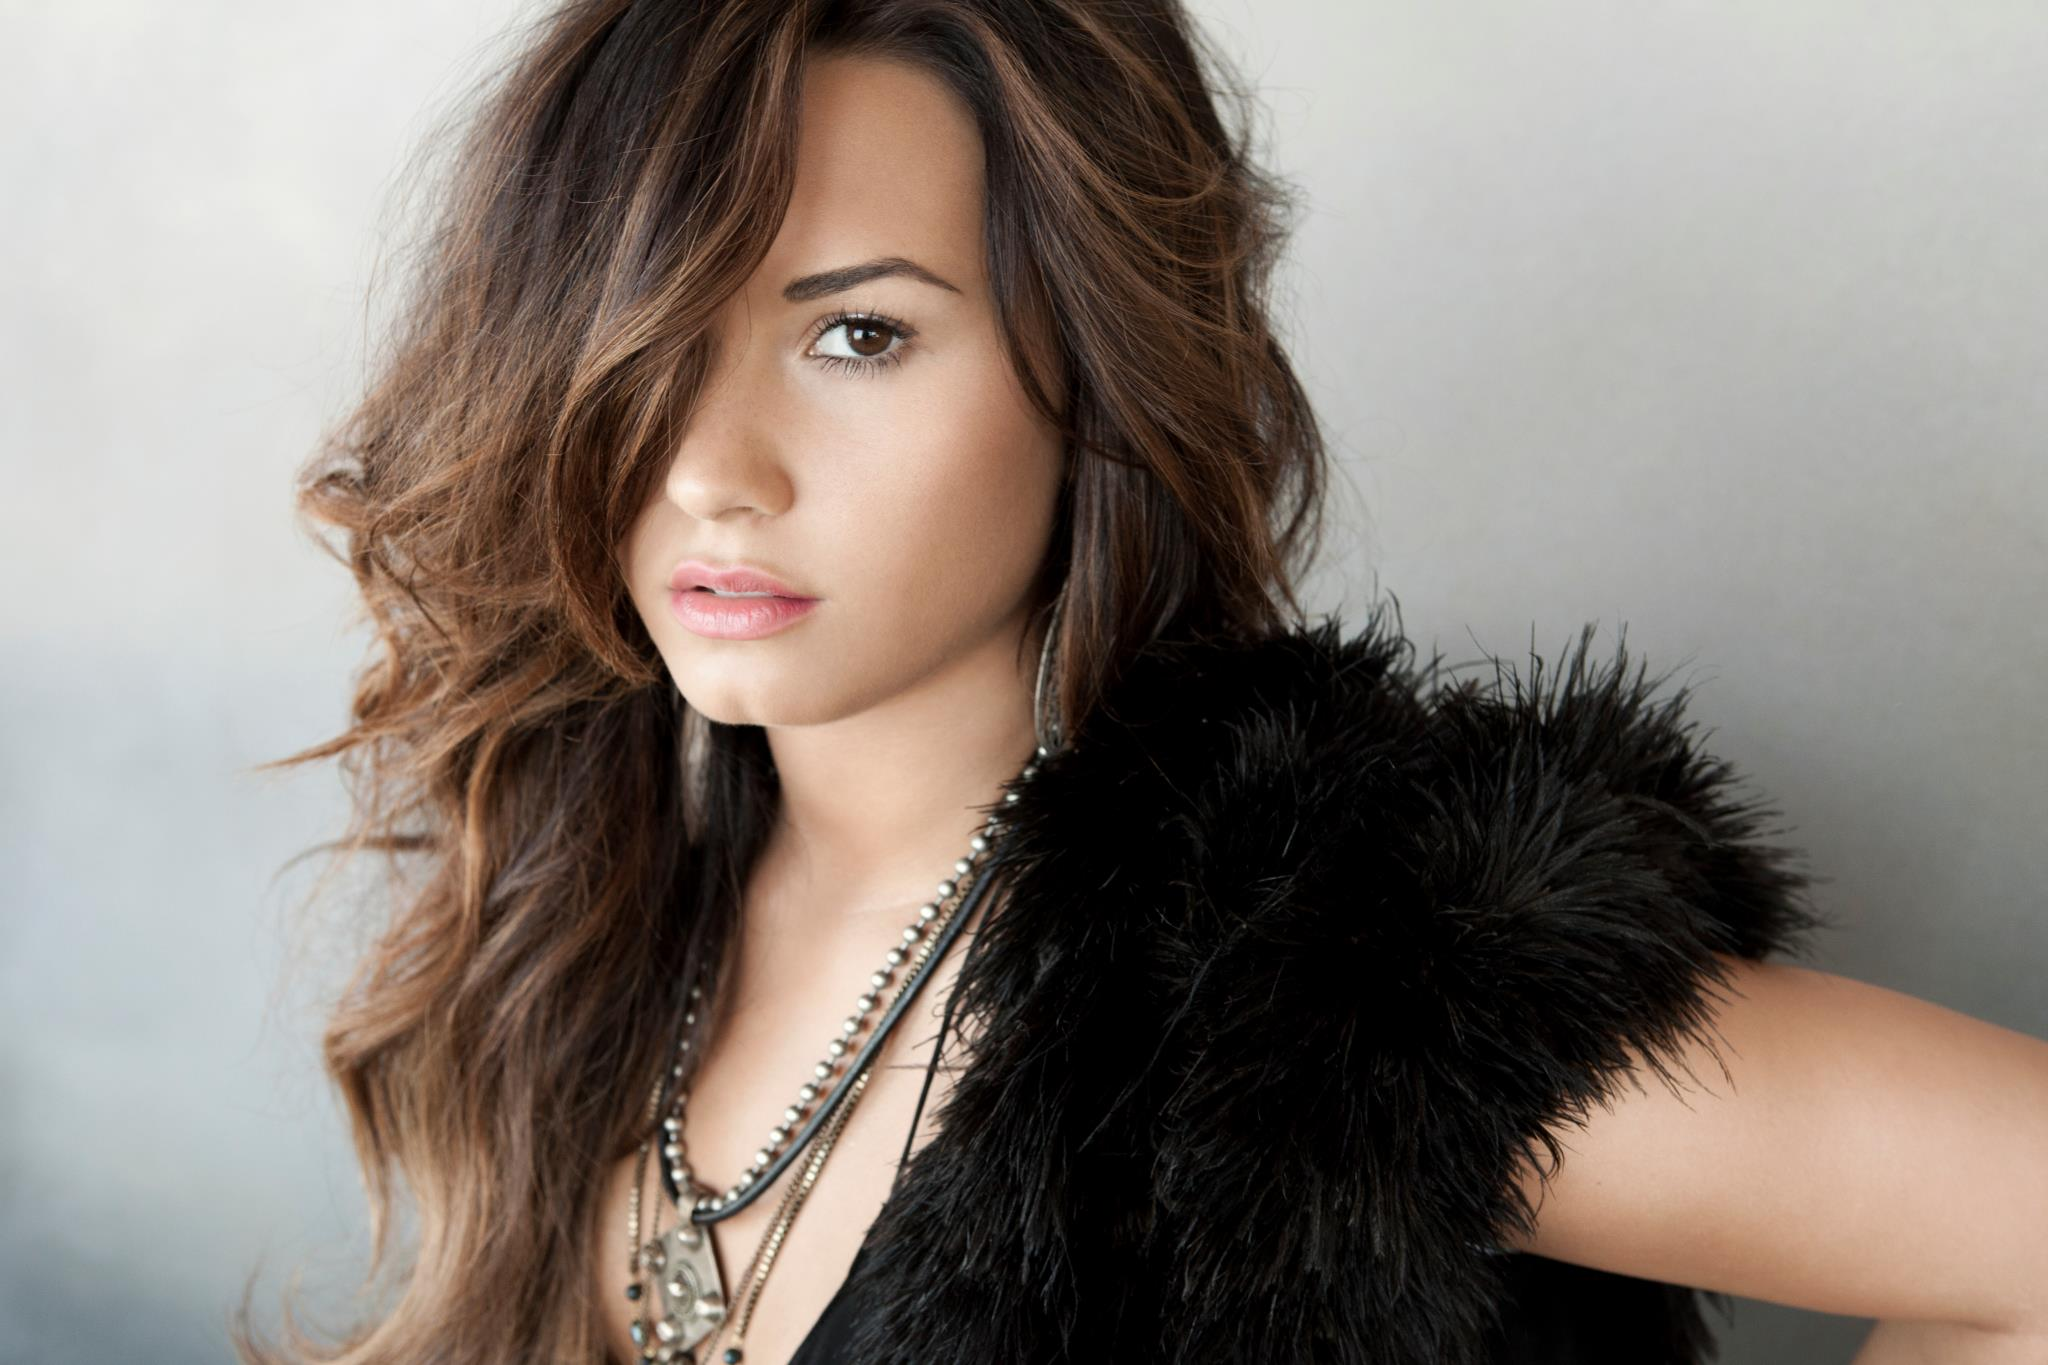 demi lovato self photoshoot - photo #35